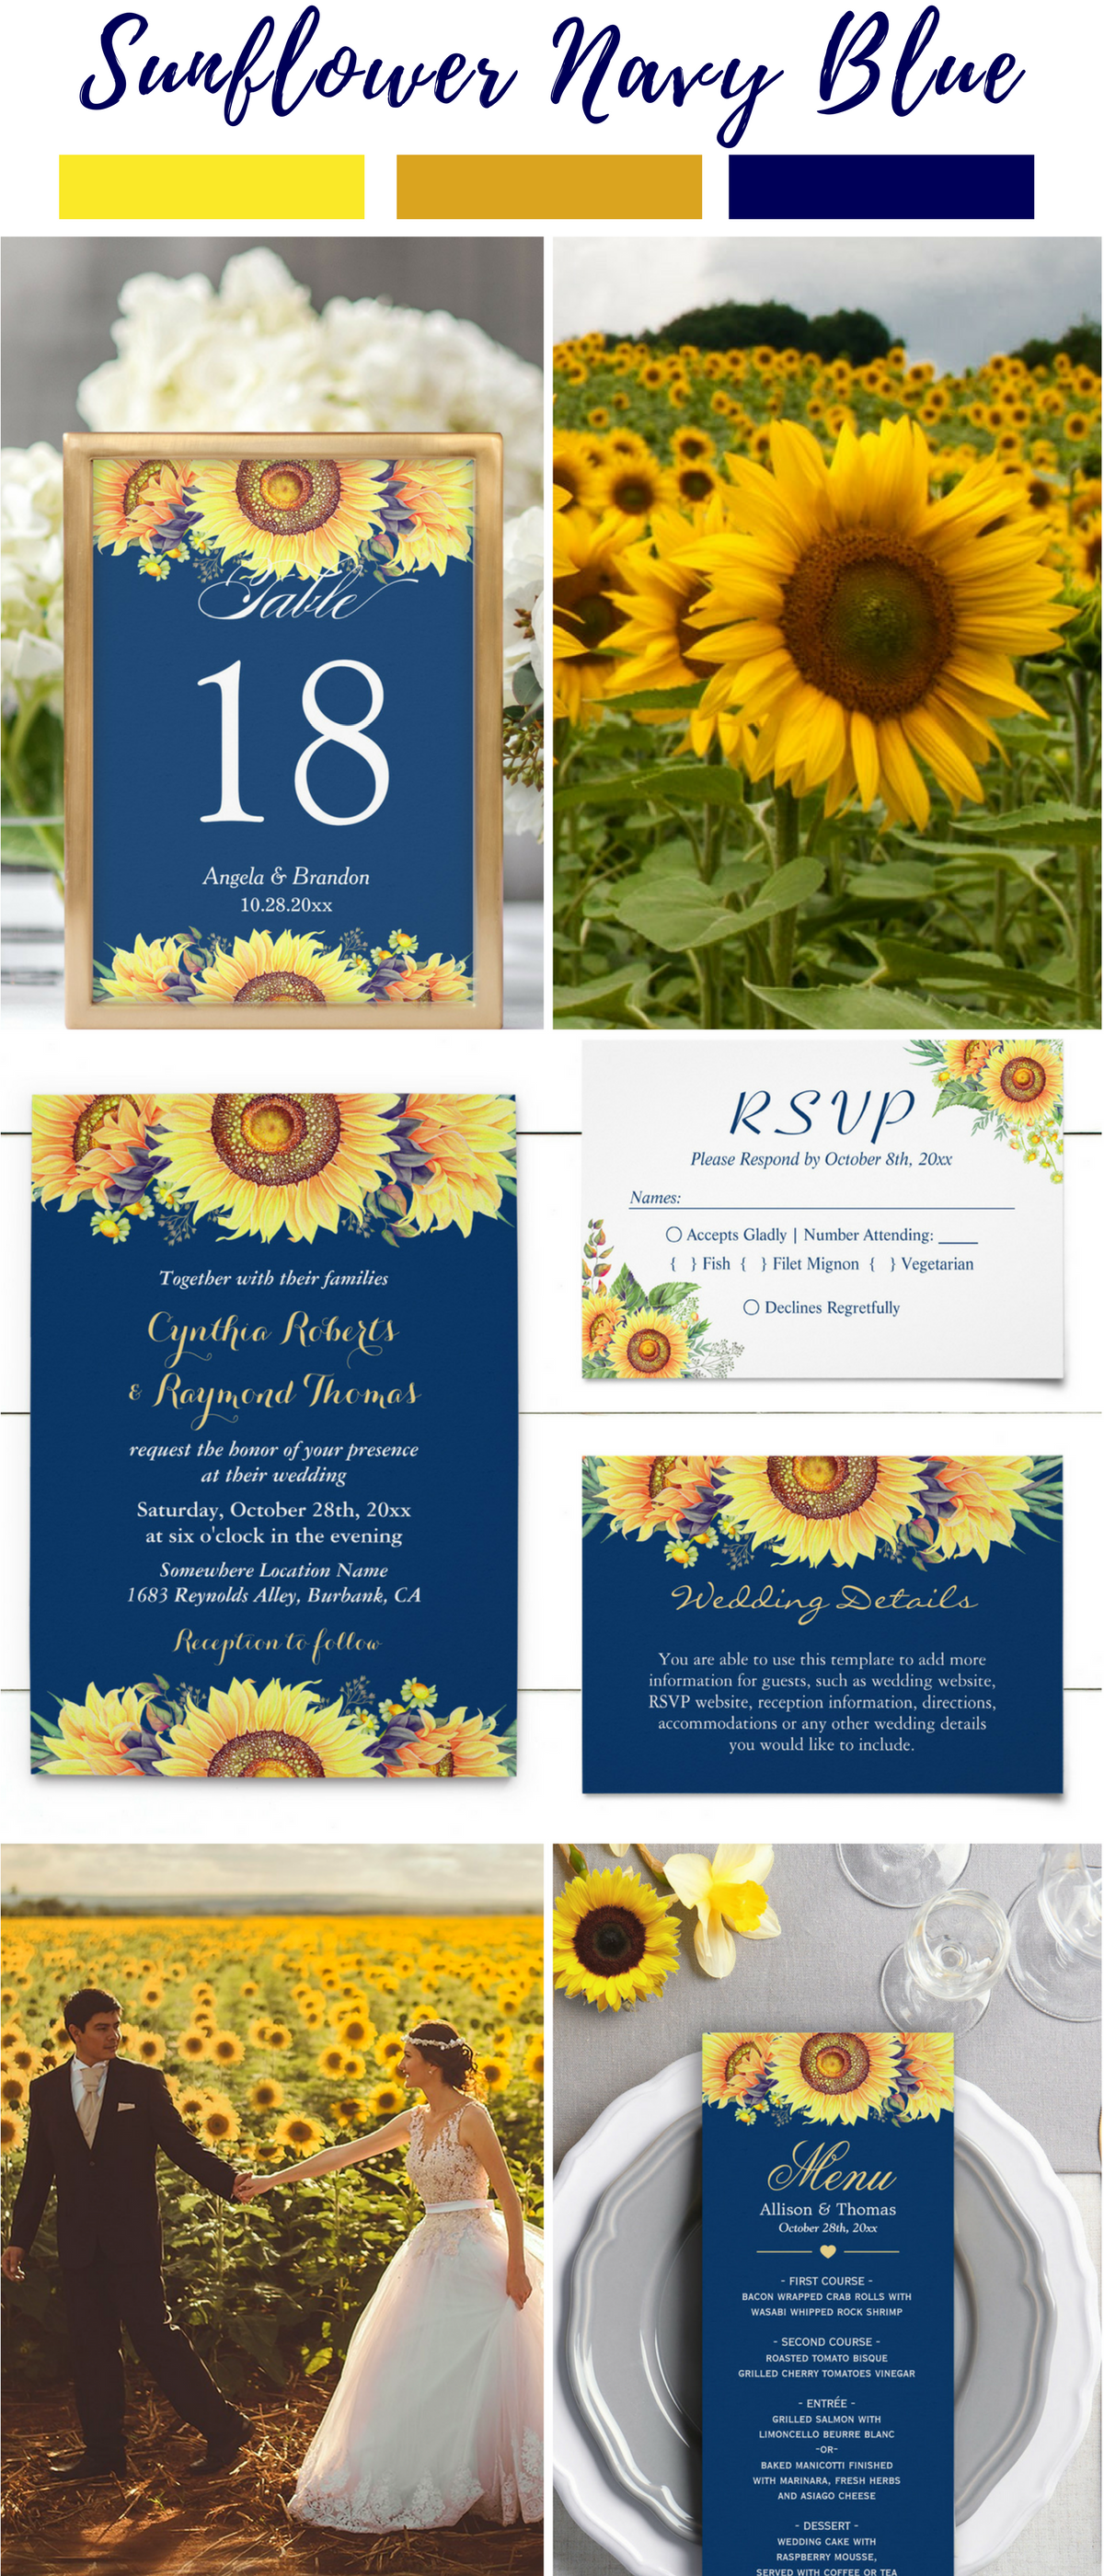 sunflower wedding invitations printable%0A Royal Blue Sunflower Wedding Invitation Royal Blue and Yellow Floral    Lemon leaves  Sunflower wedding invitations and Sunflower weddings